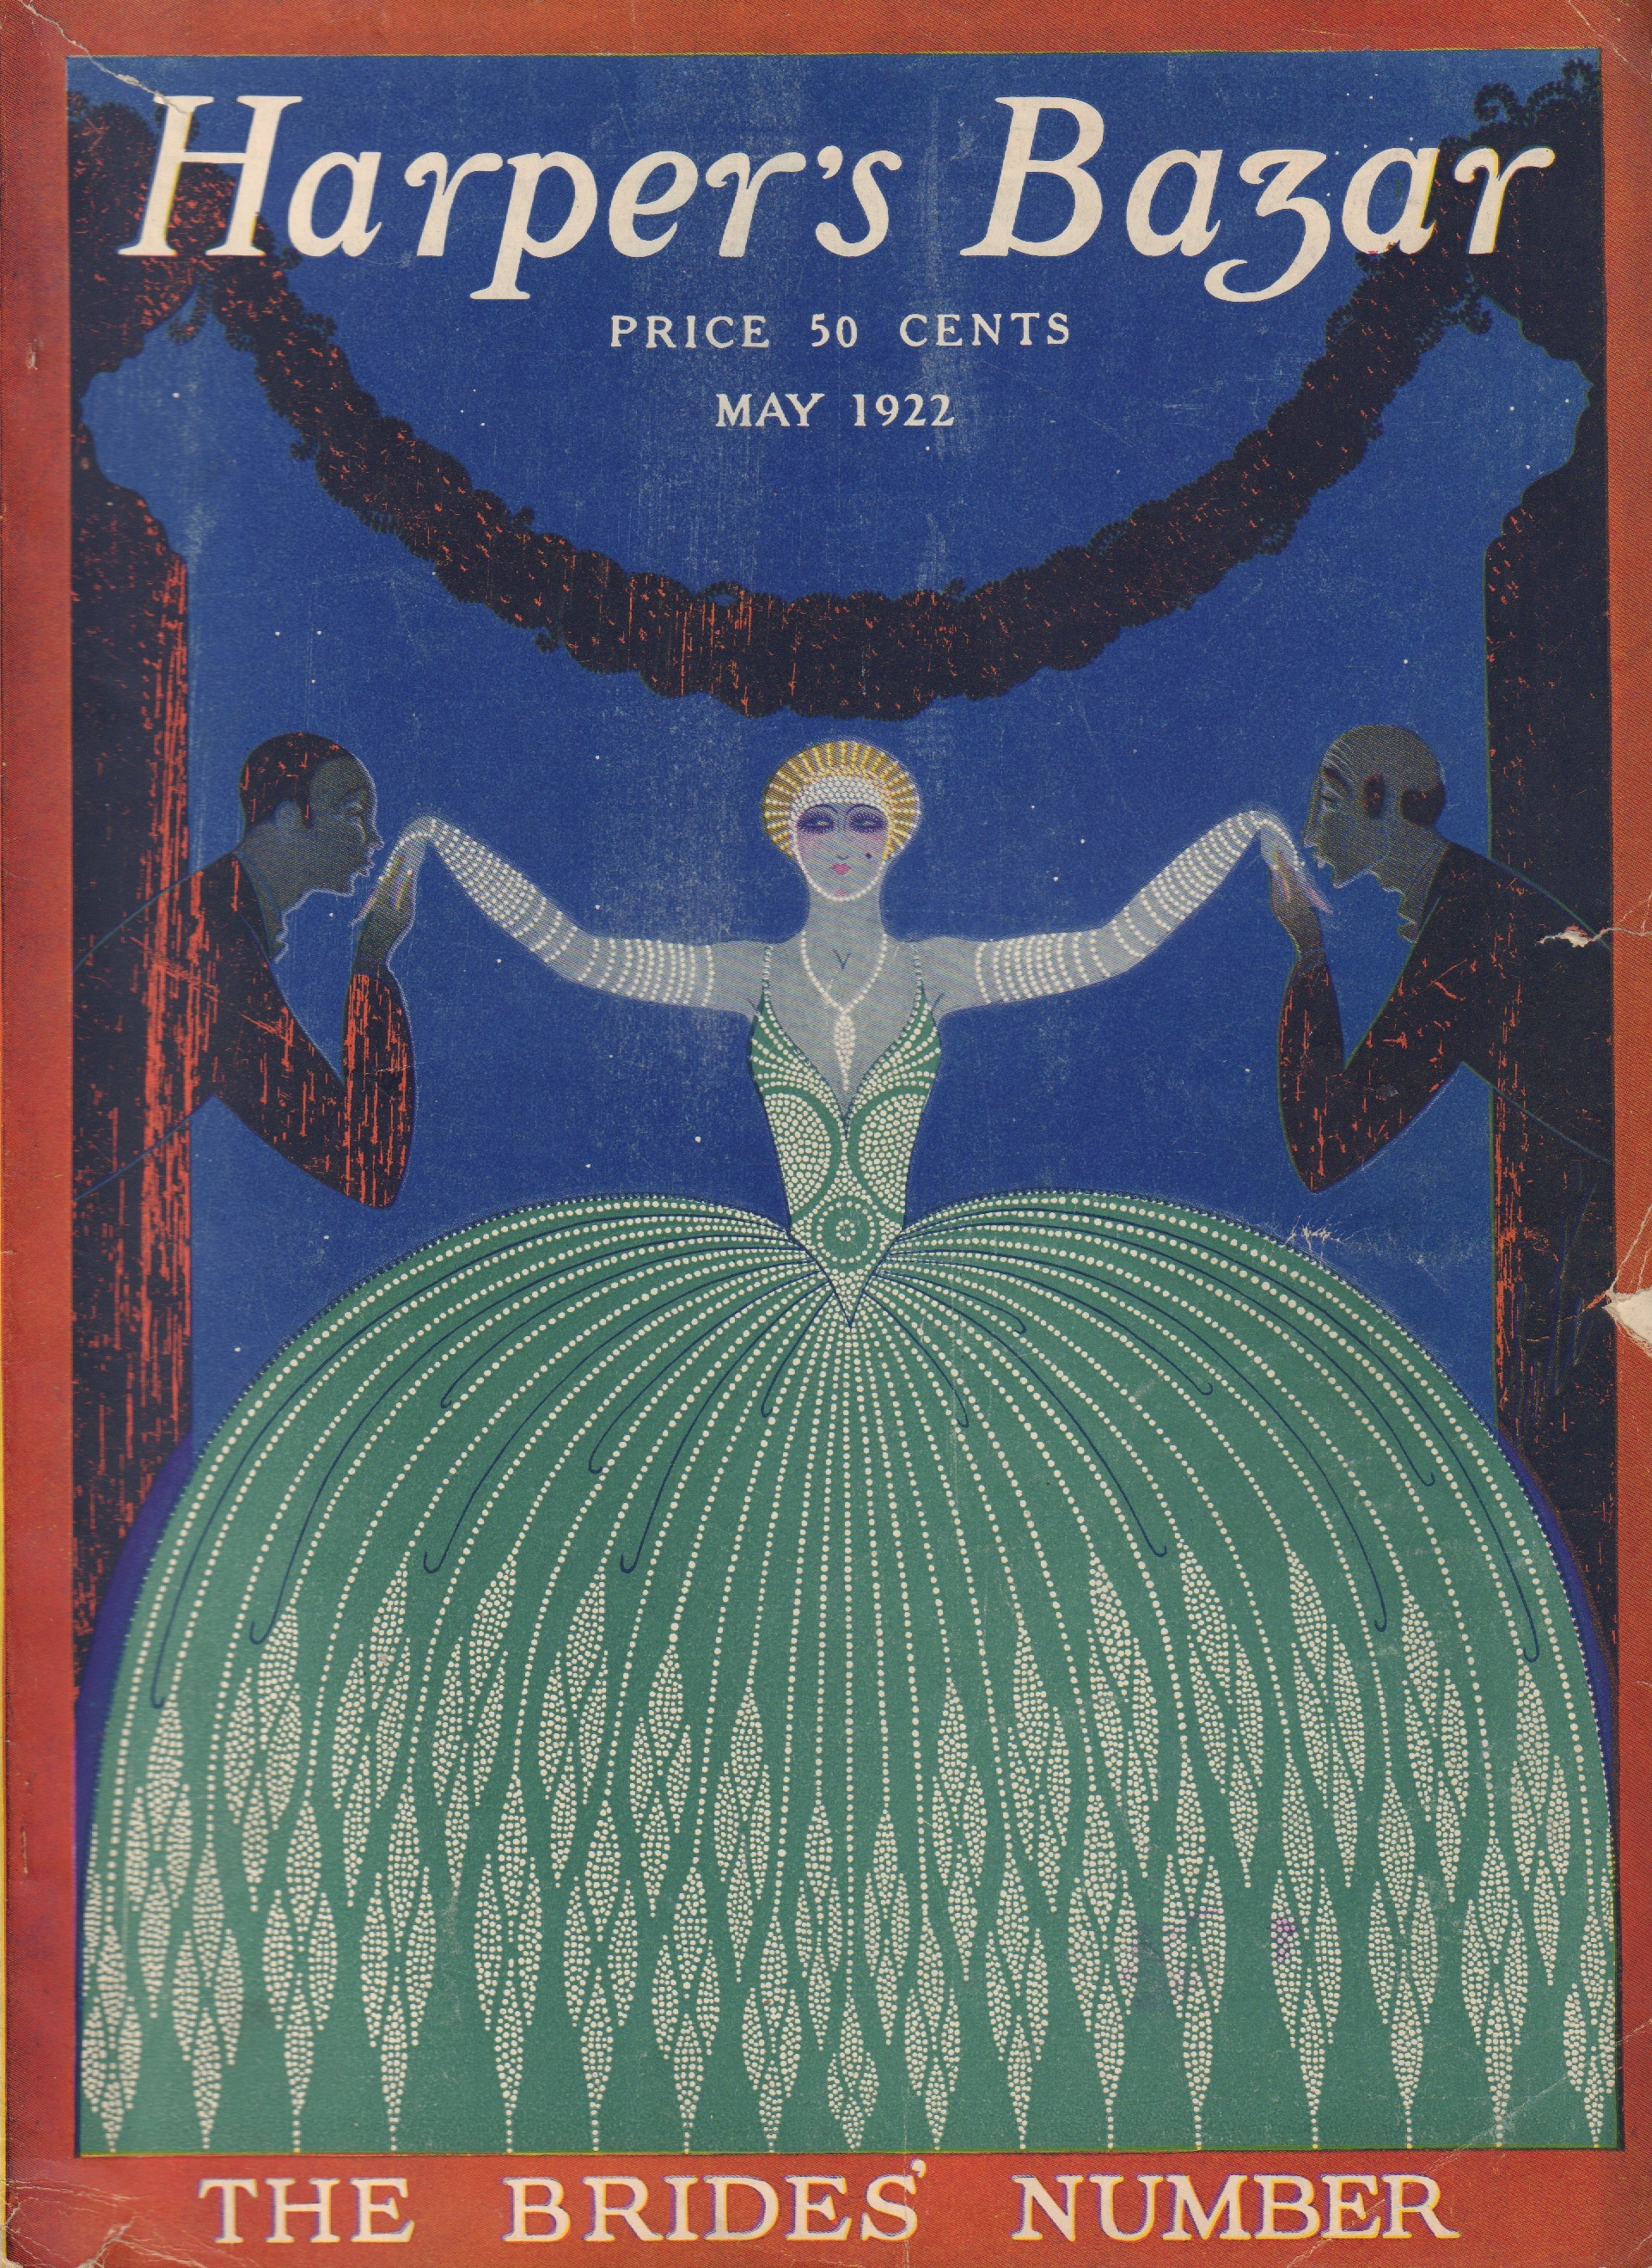 Image for Harper's Bazar (Bazaar) May 1922